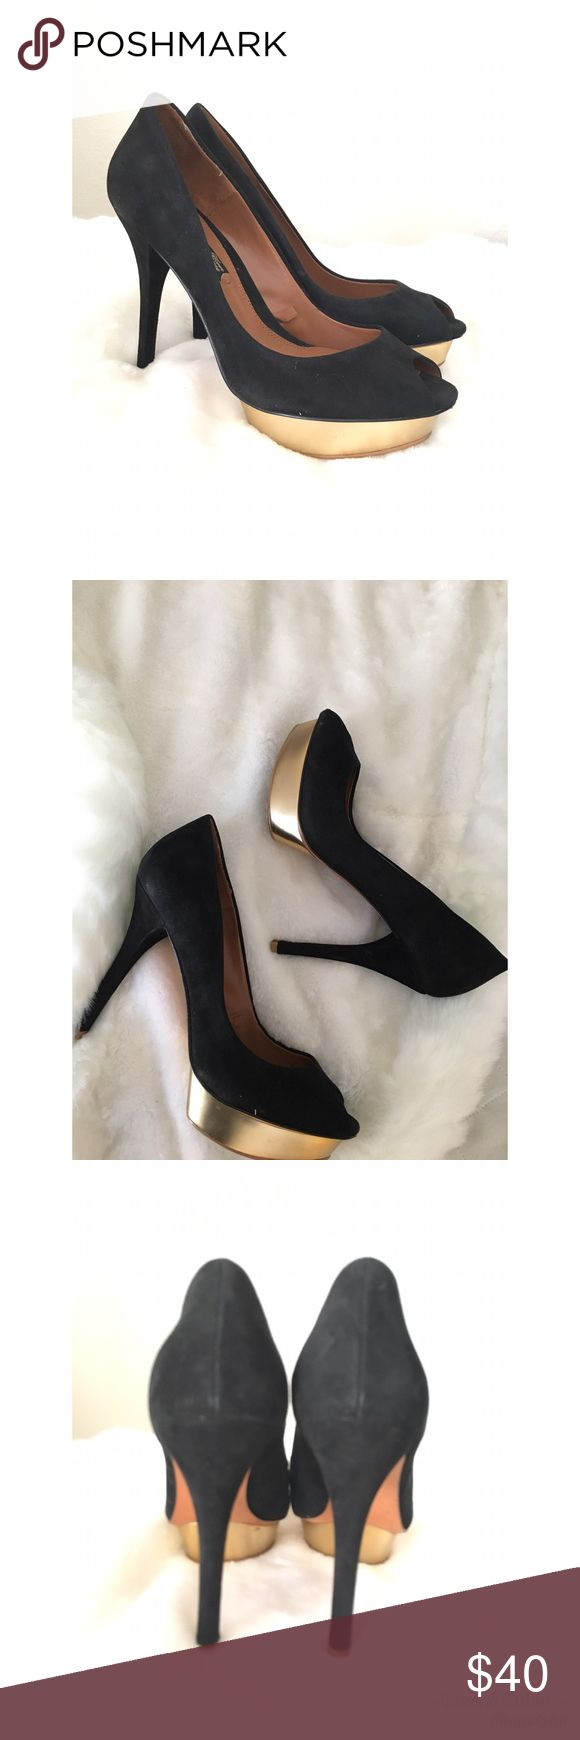 Zara Black Suede Pumps/Heels With Gold Platform✨ These black heels are gorgeous! Only worn a few times. Very little wear on the bottom, other than that in great condition ✨✨ Size 8 Height 5 inches   Sorry no Trades Zara Shoes Heels